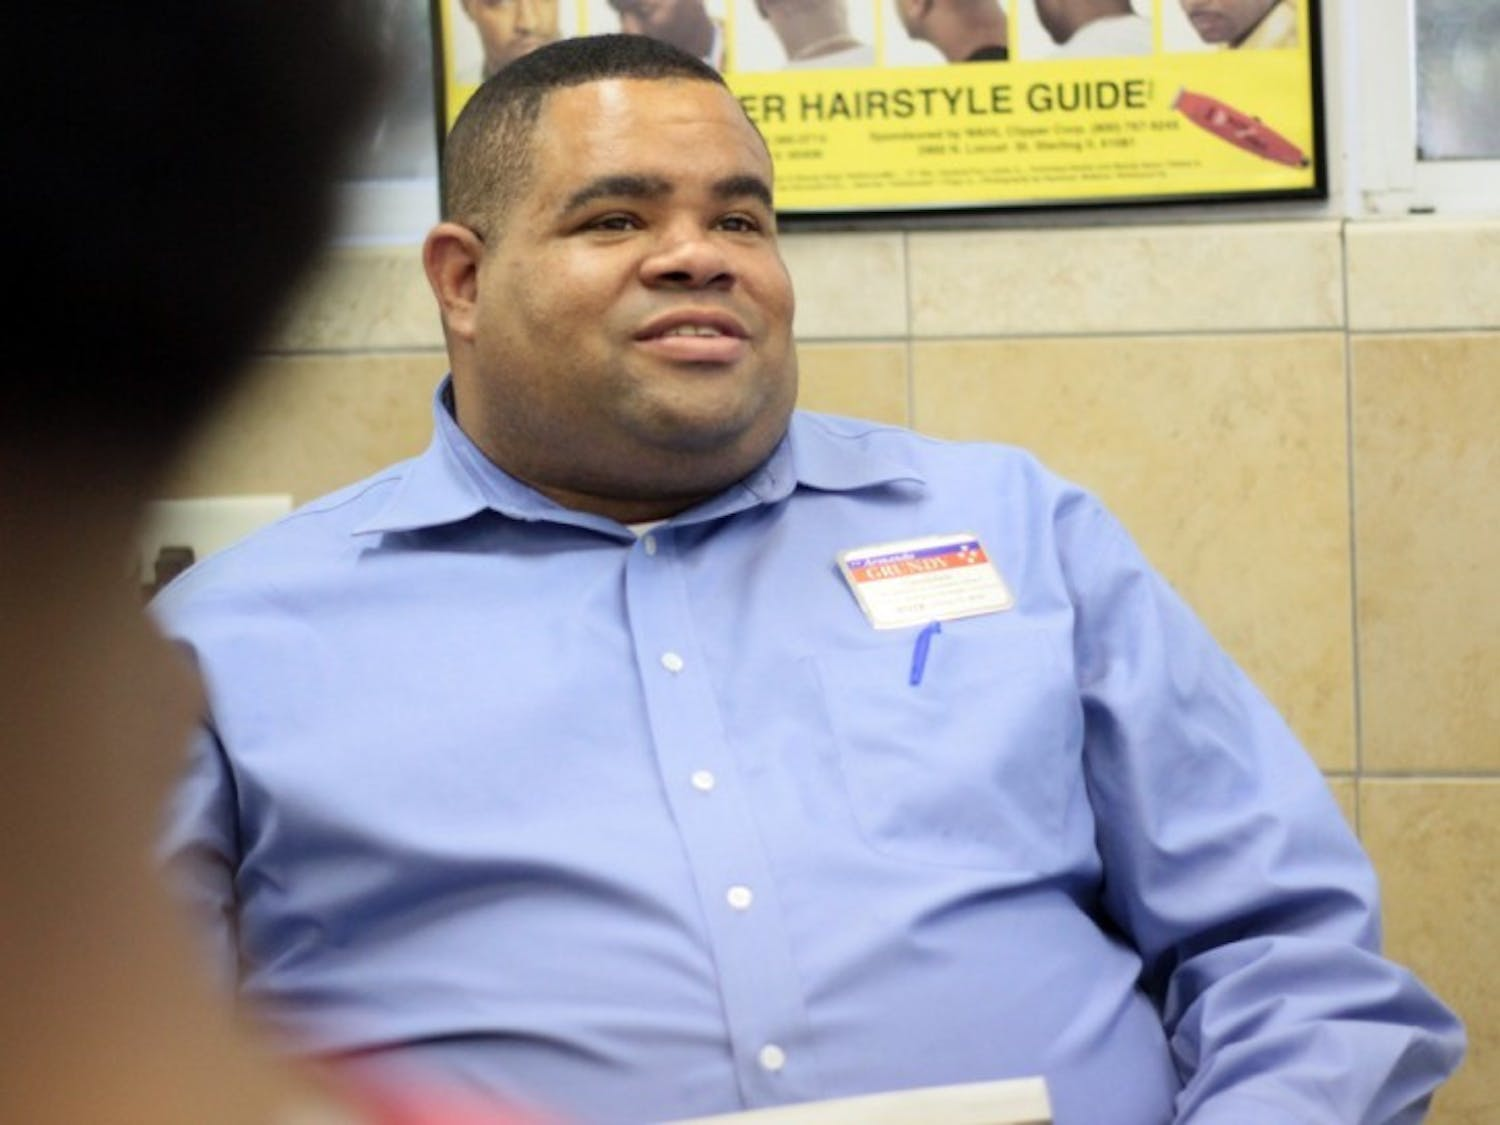 Armando Grundy, 32, is one of three candidates running for Gainesville City Commission, District 1.